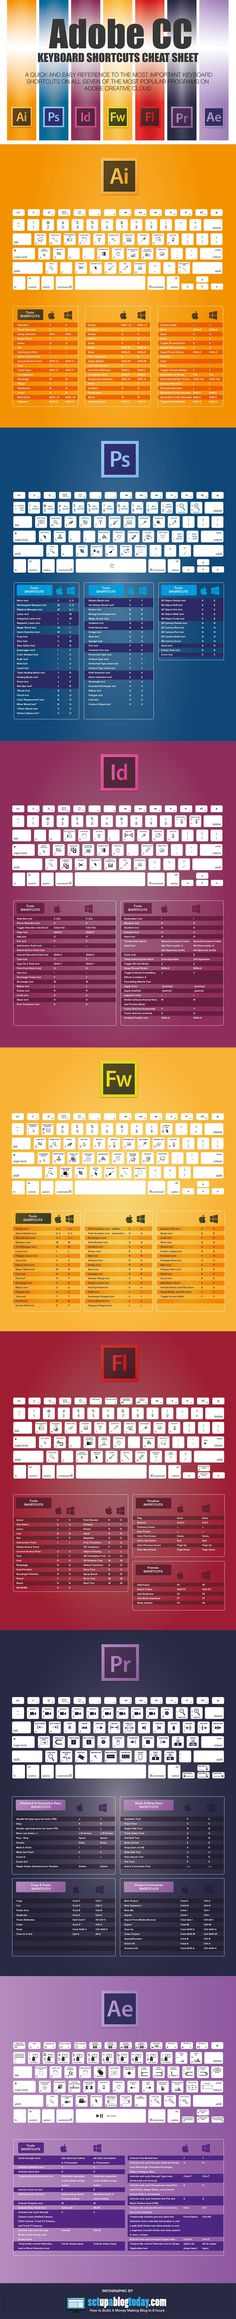 Keyboard shortcuts are the ticket to working faster in many programs. This cheat…